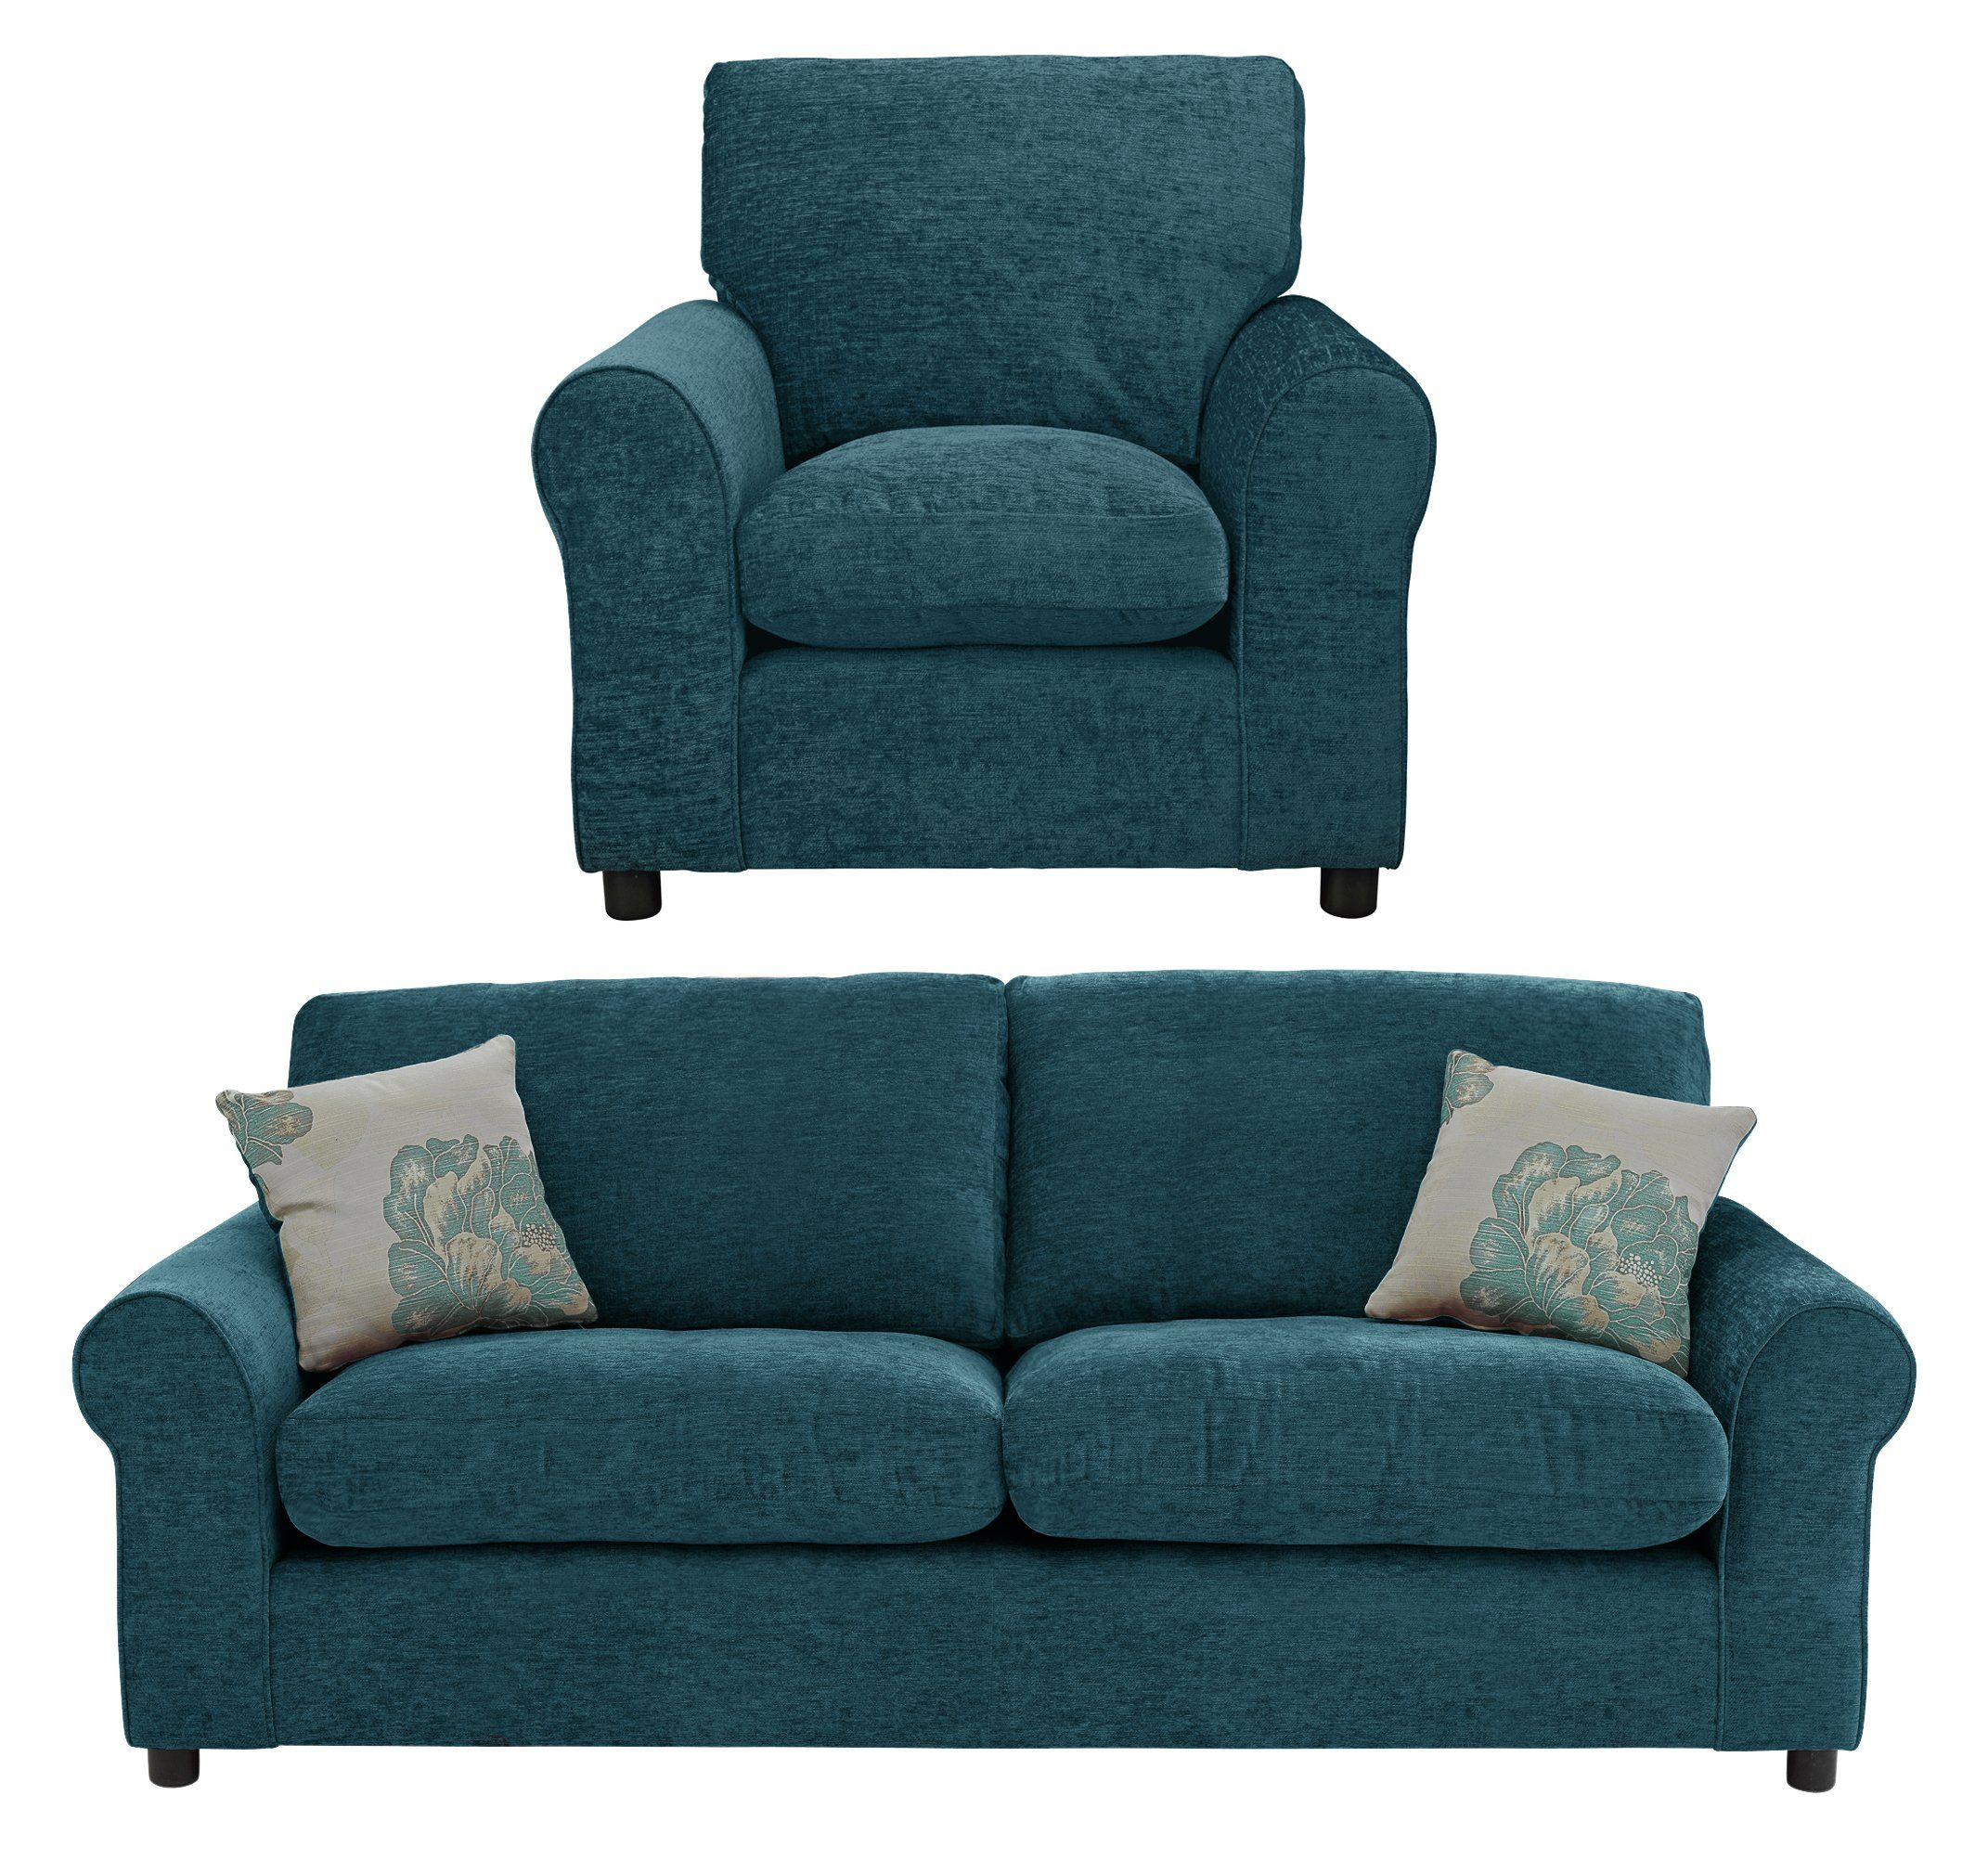 Buy HOME Tessa Fabric 3 Seater Sofa and Chair Teal at